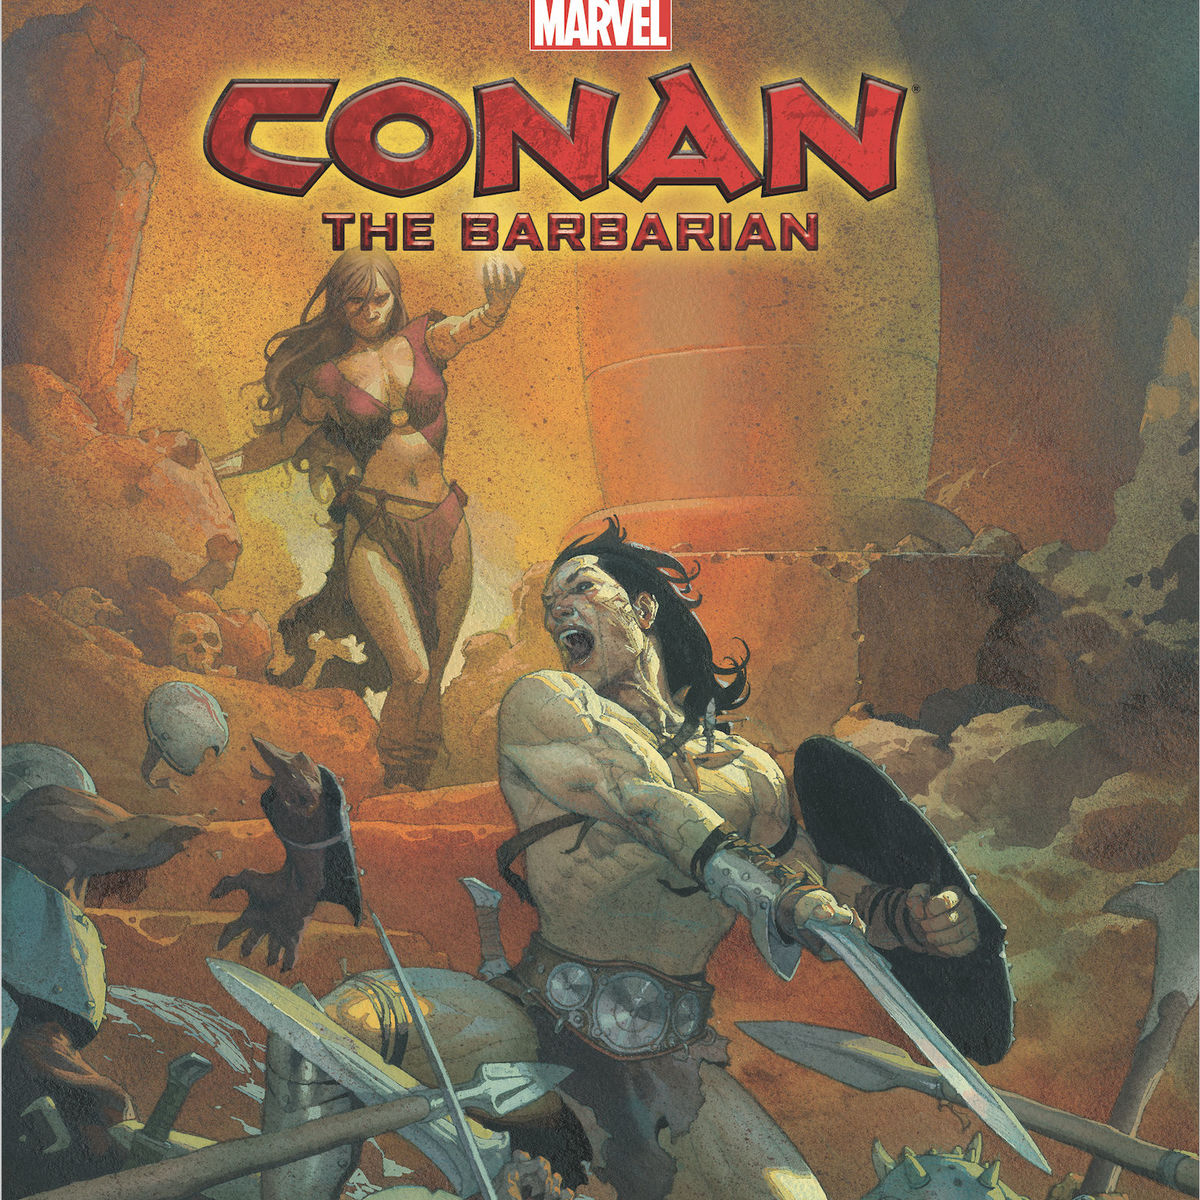 Conan the Barbarian' #1 review: A return to sword, sorcery